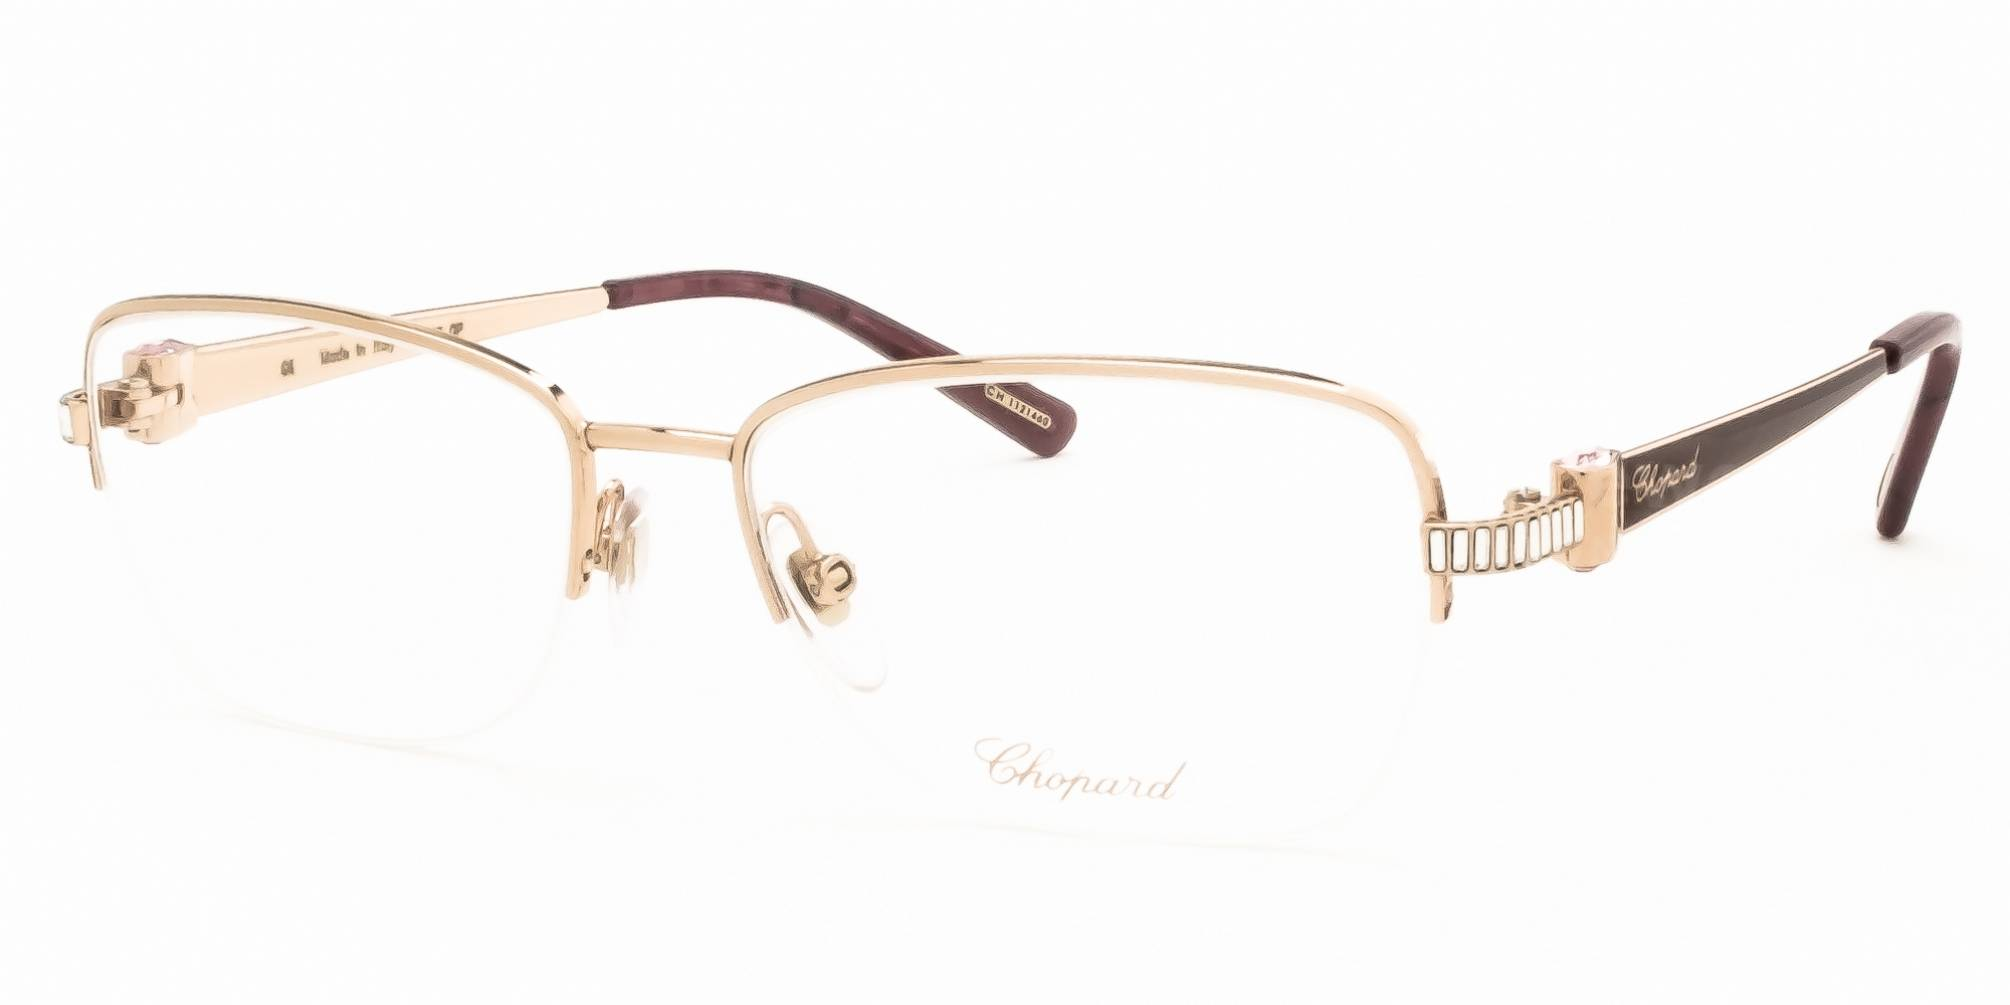 a150b4b2039 Colorful Chopard Eyeglasses Frames Ideas - Frames Ideas Handmade ...